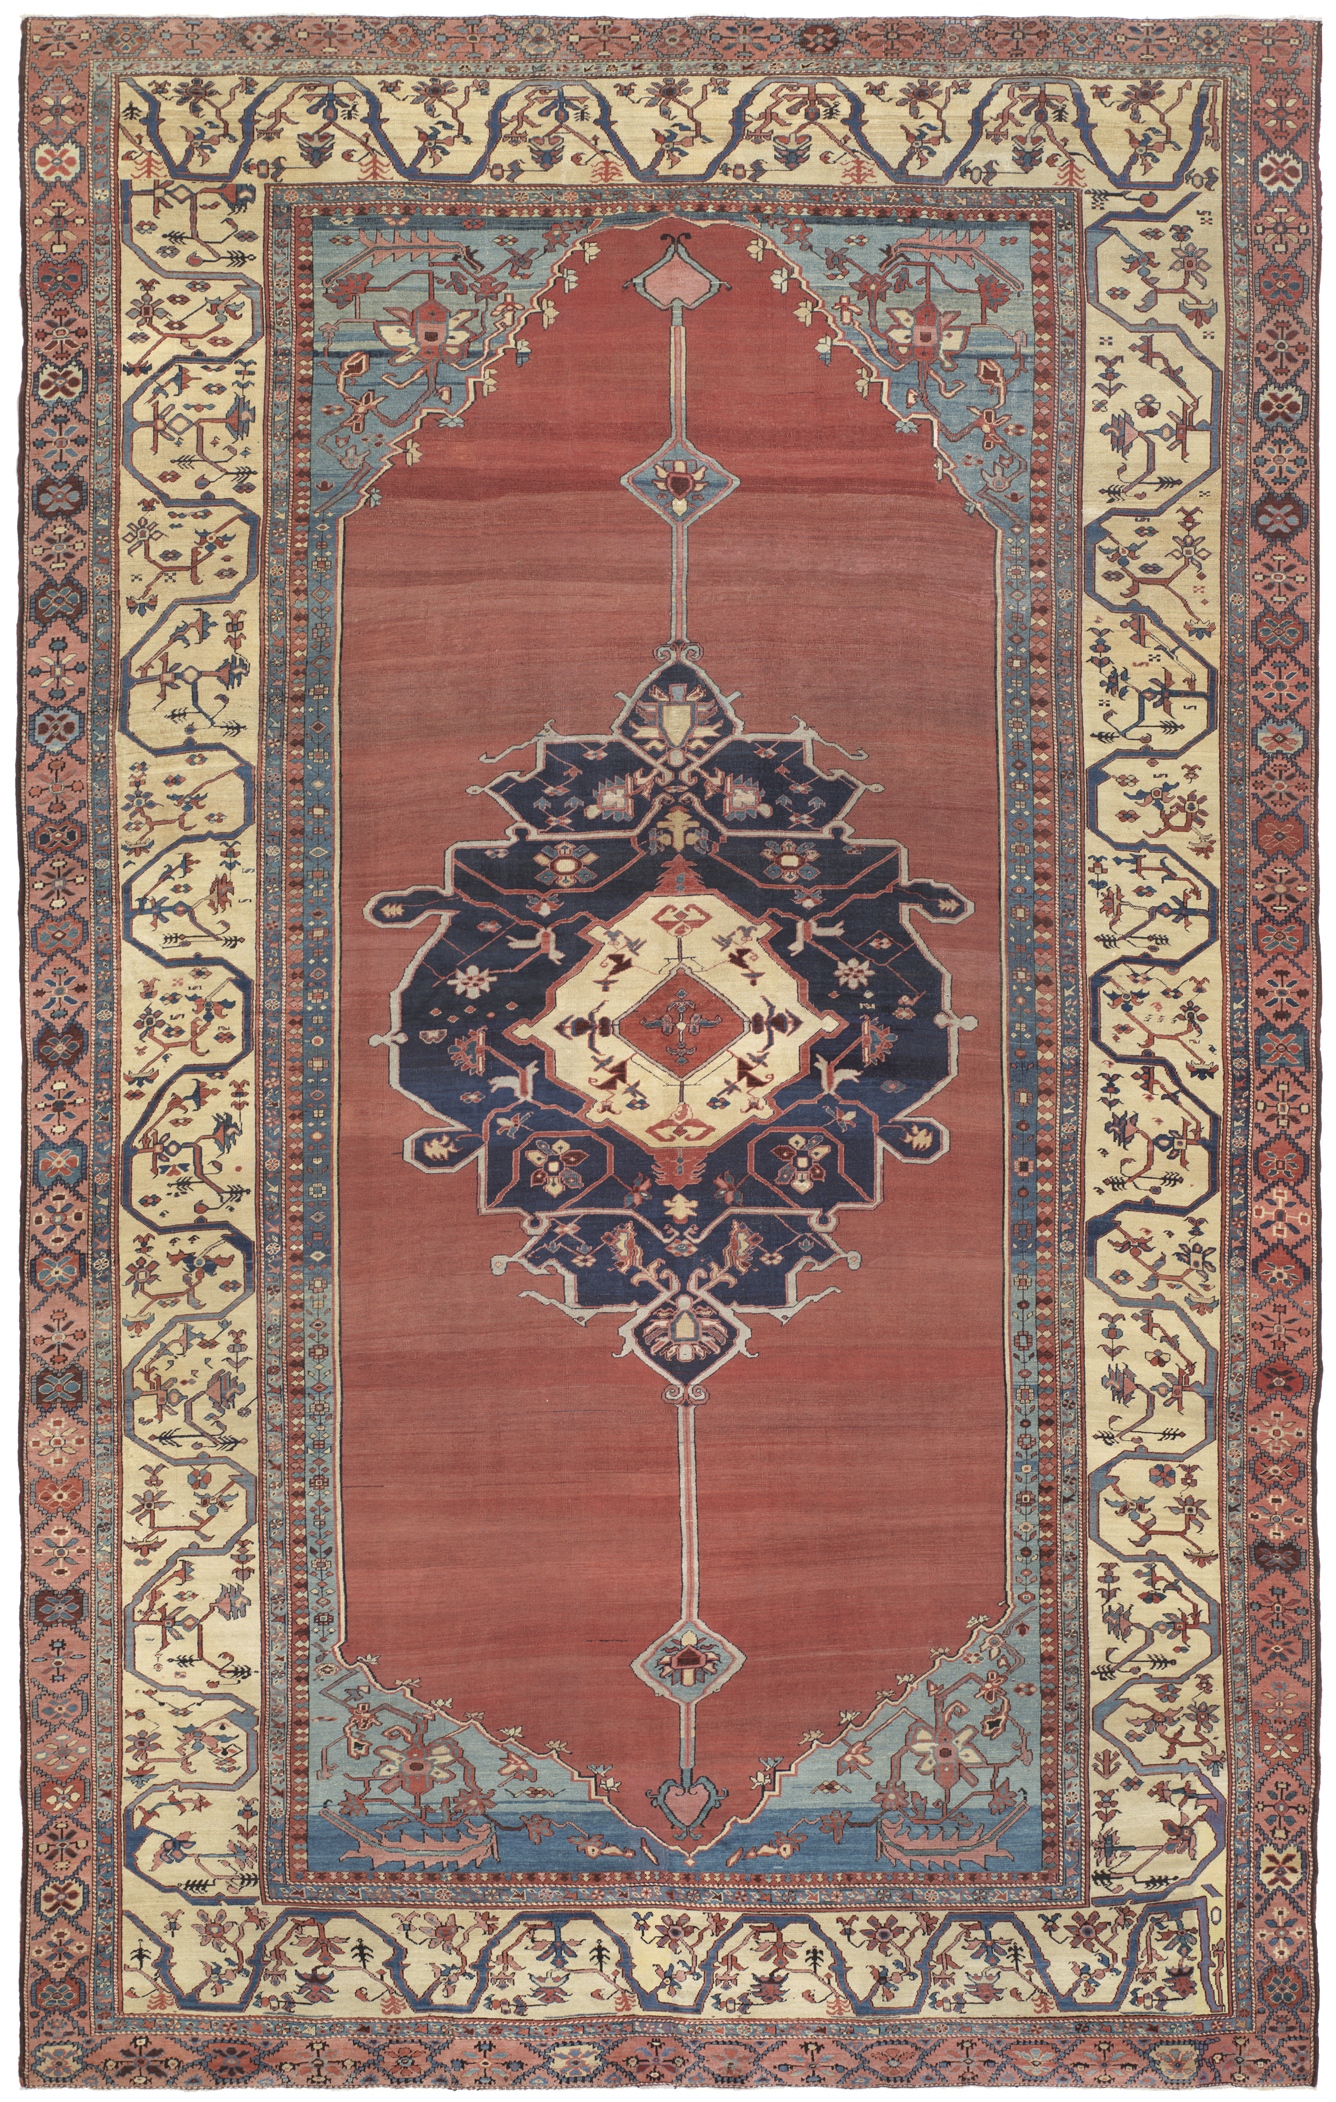 Perfect Claremont Rug Company Names Best of the Best Antique Rugs Sold in  KP44